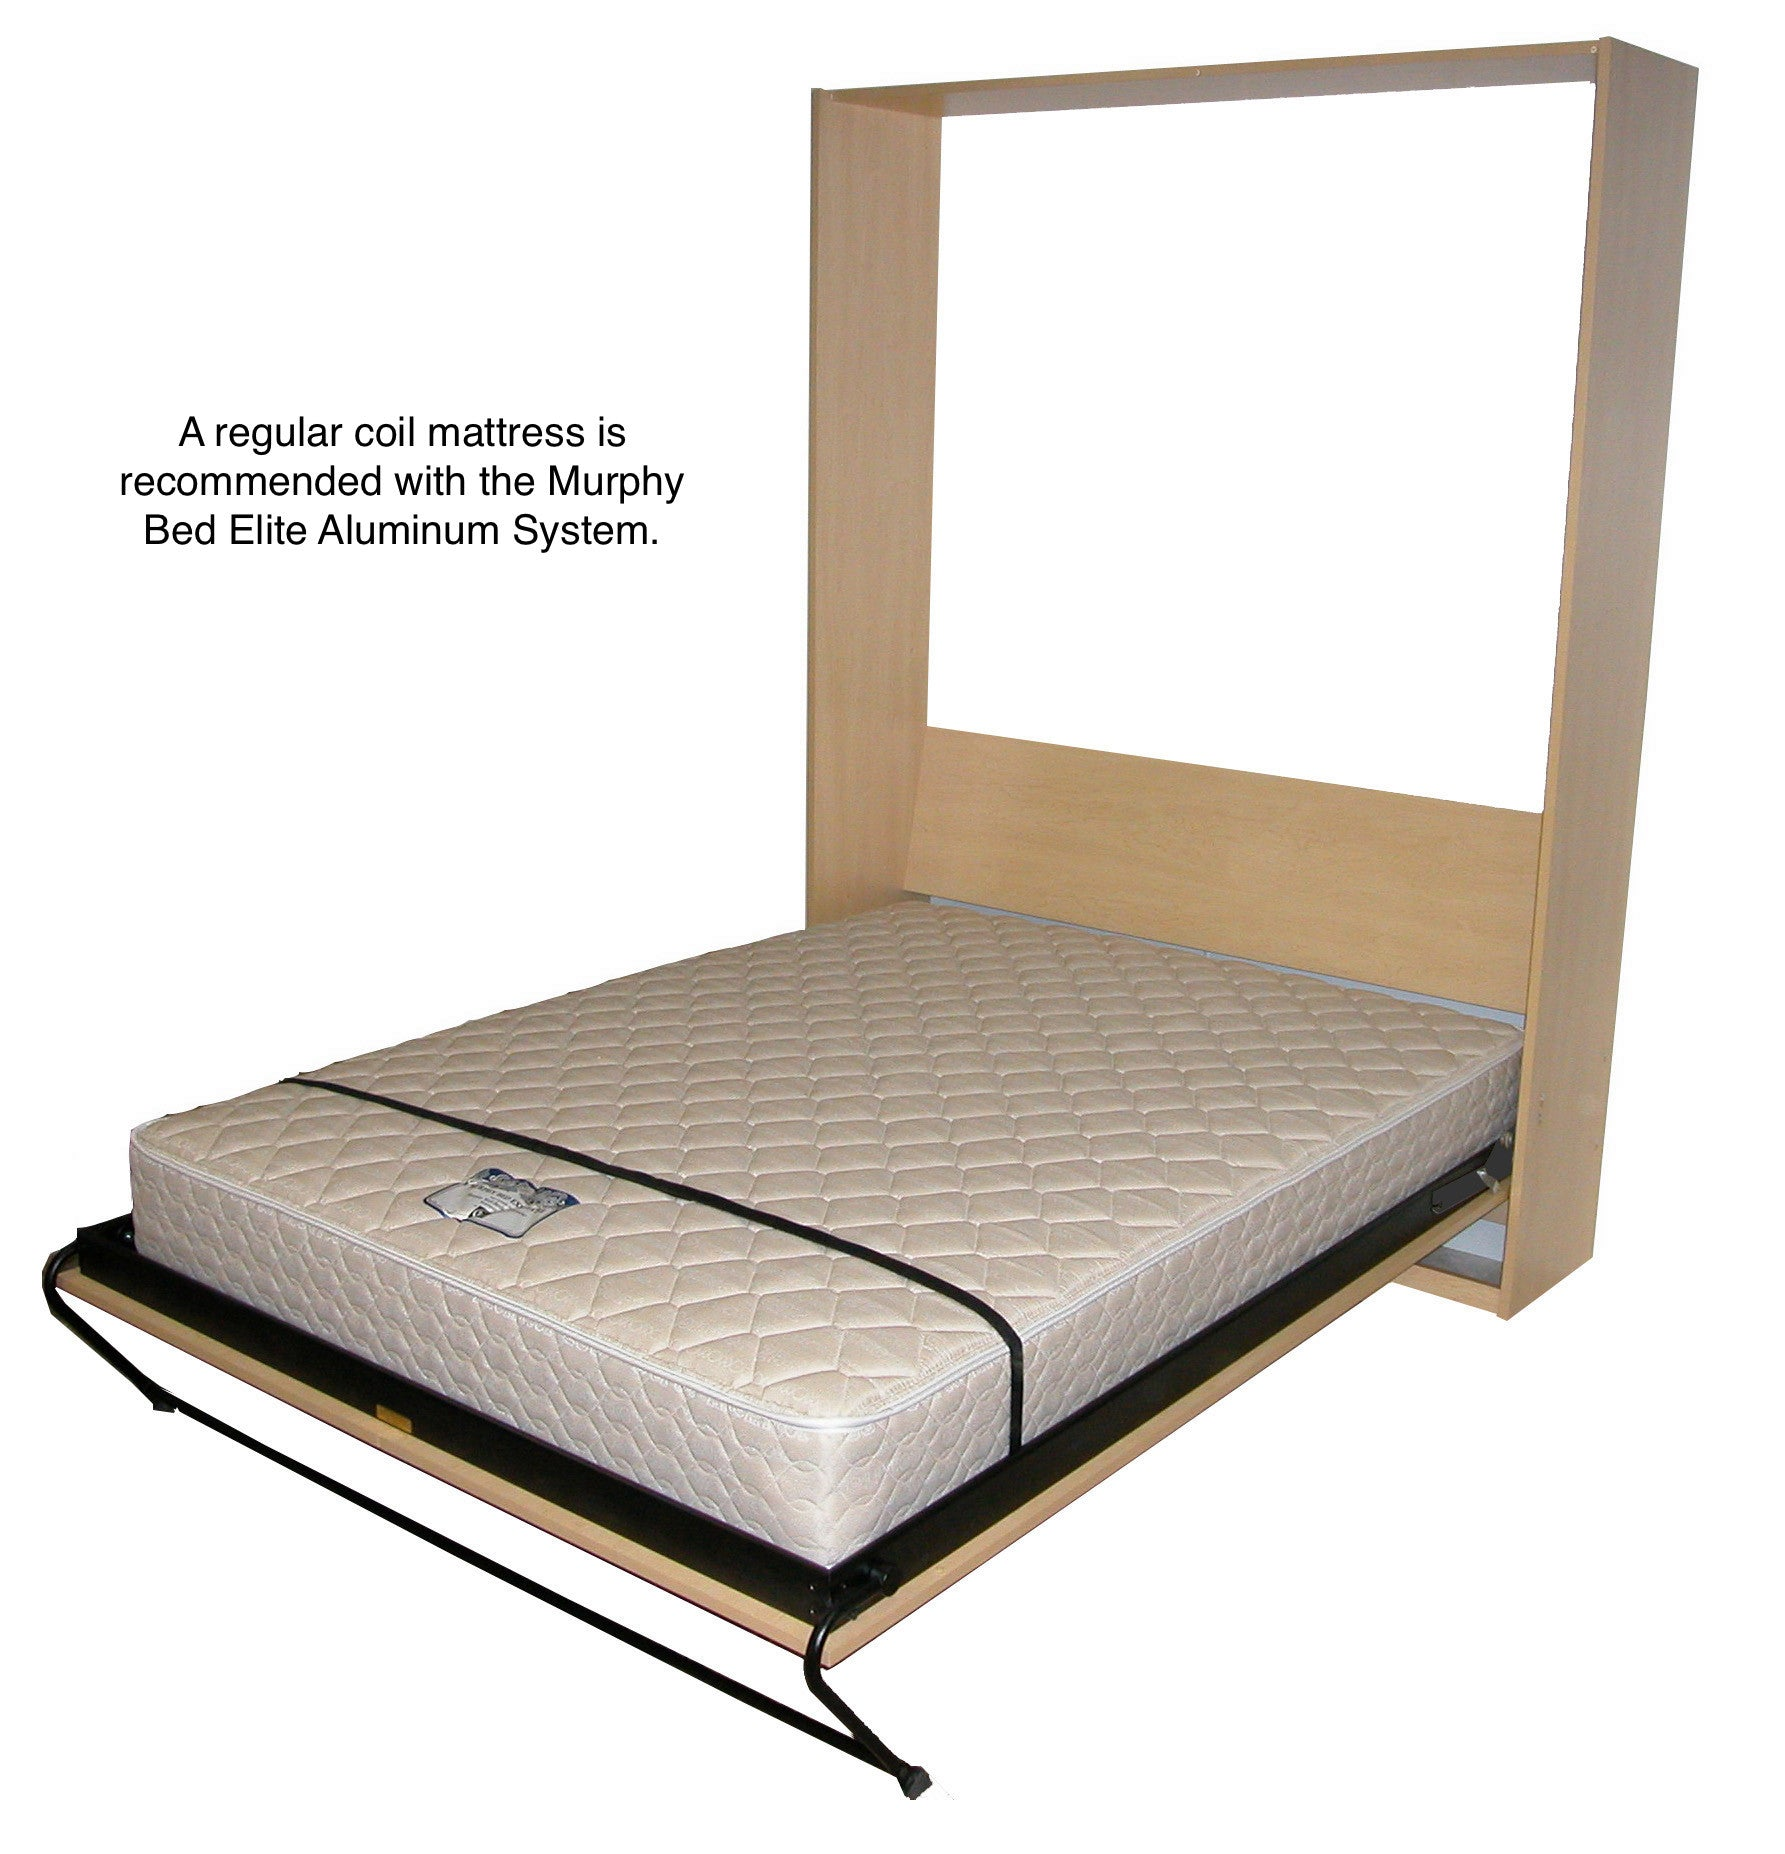 upright elite mattress - Murphy Bed Frame